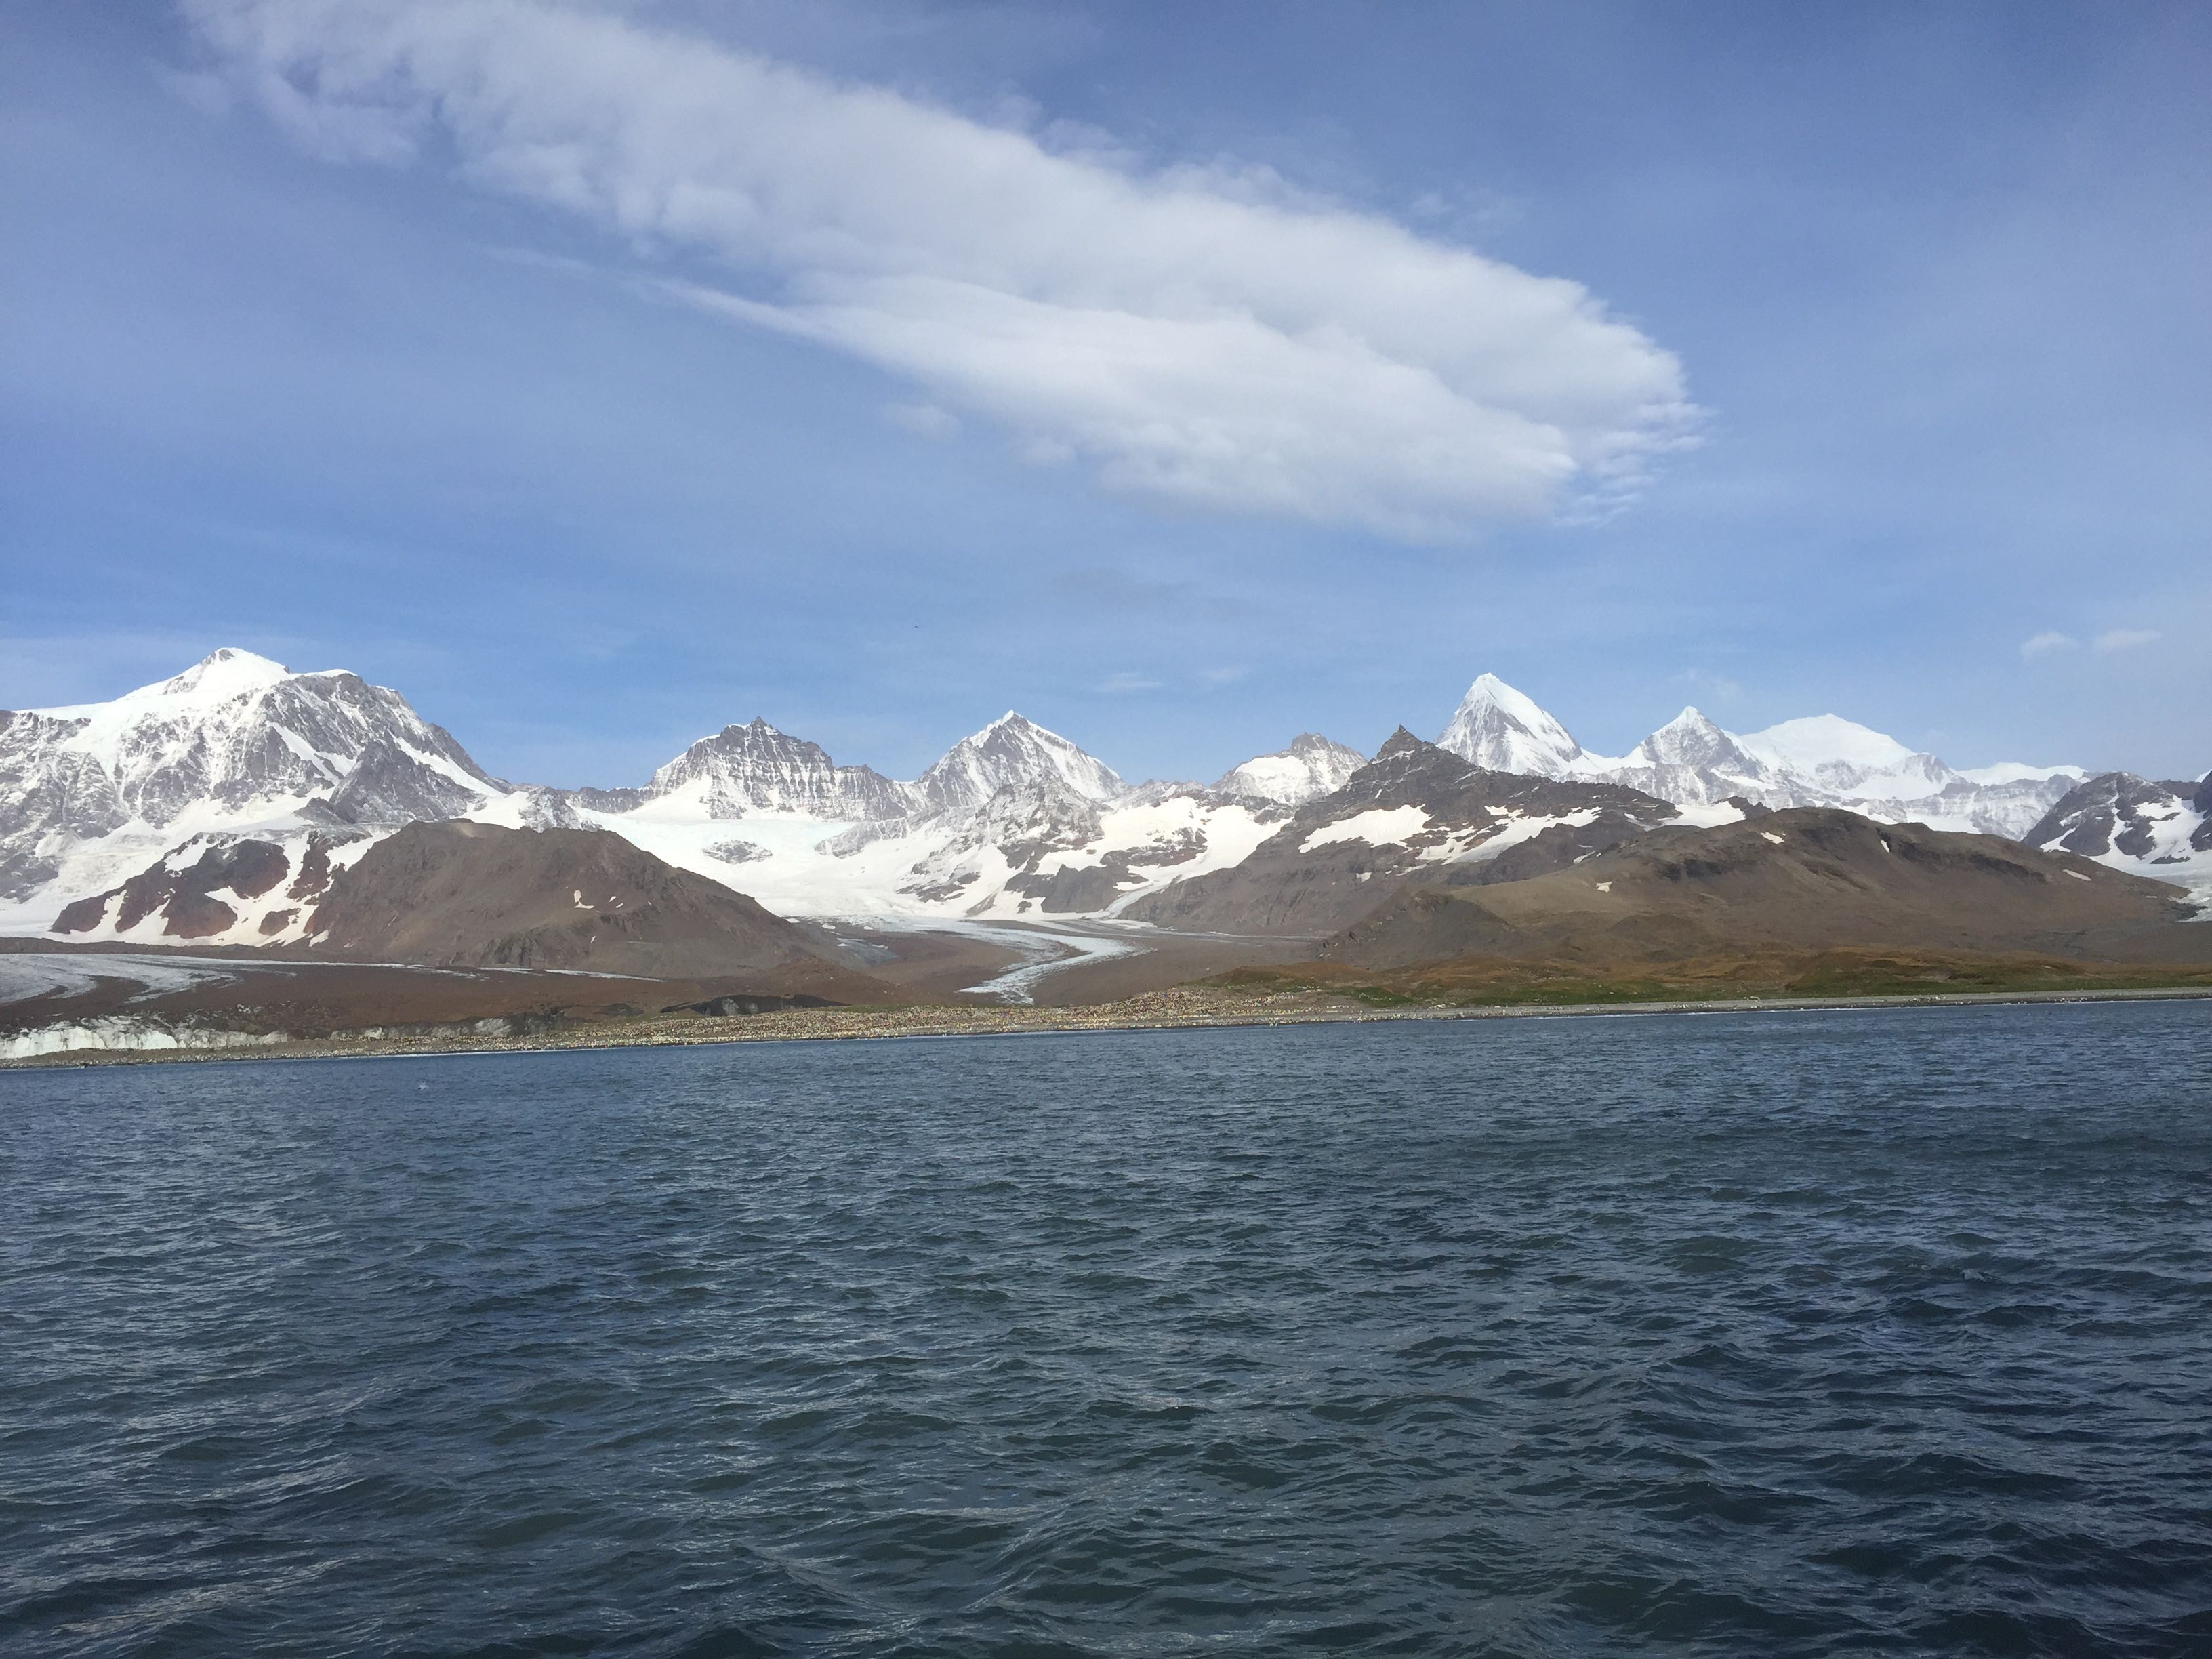 The glaciers and peaks surrounding St Andrew's Bay